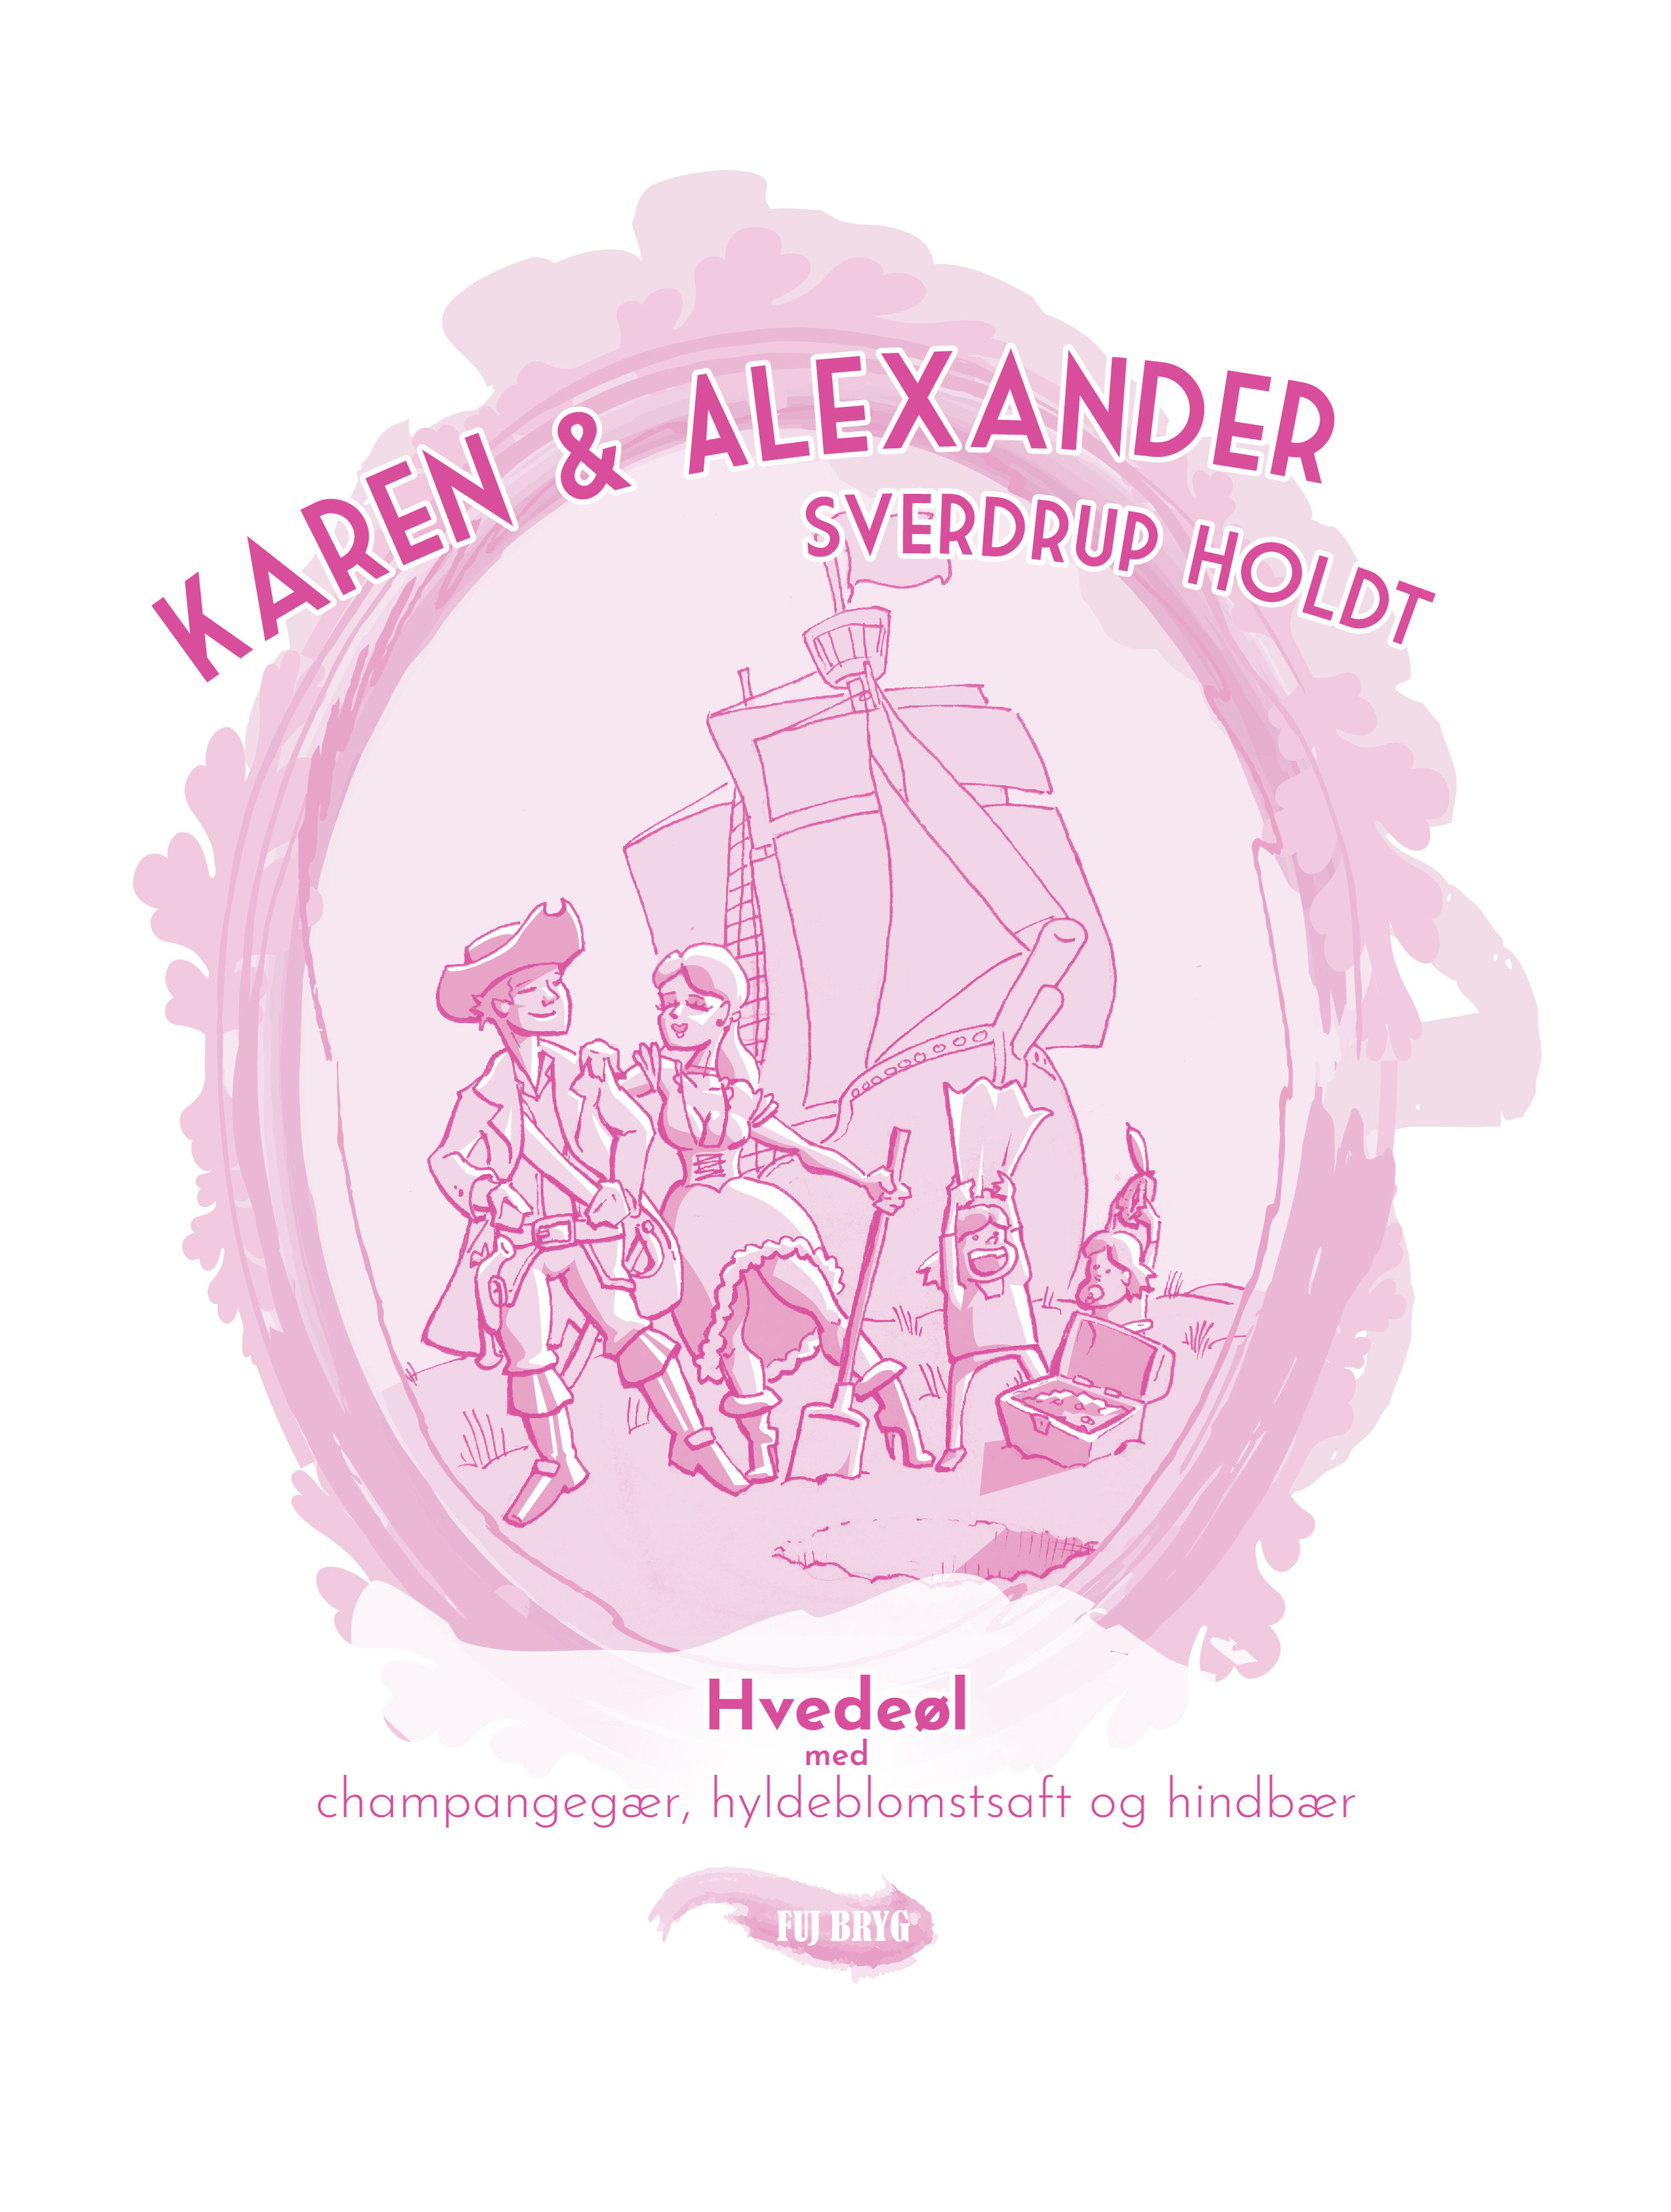 Weddingbeerlabel-05.jpg